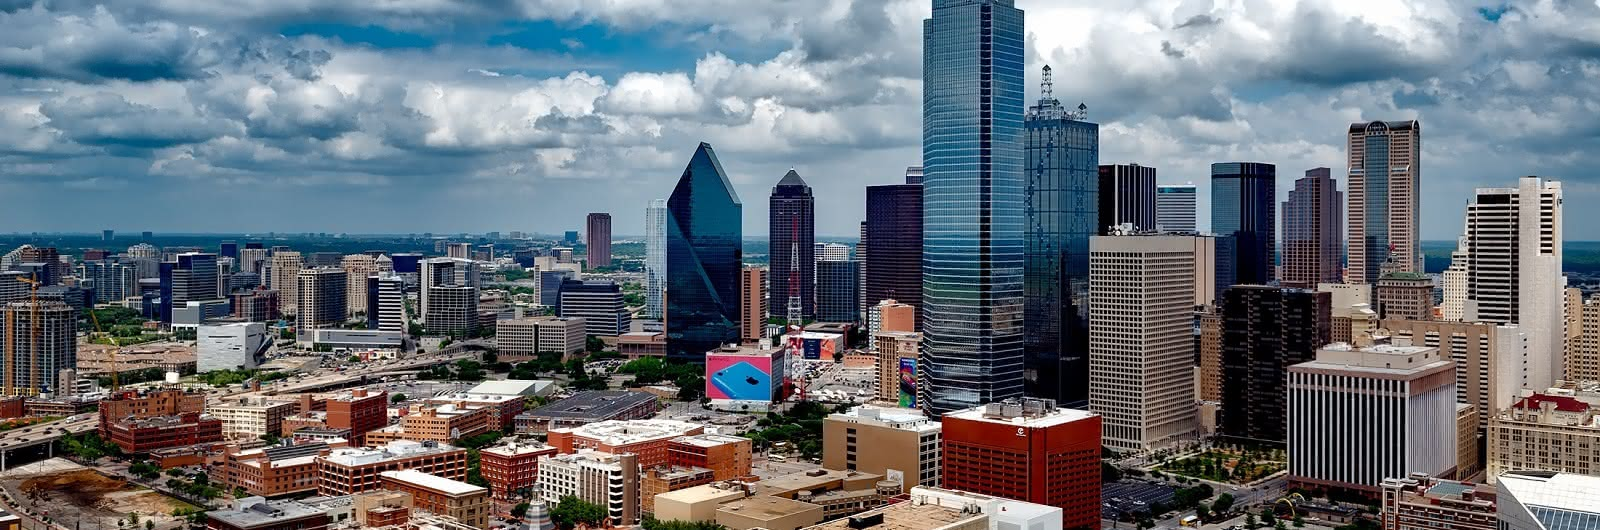 dallas city header